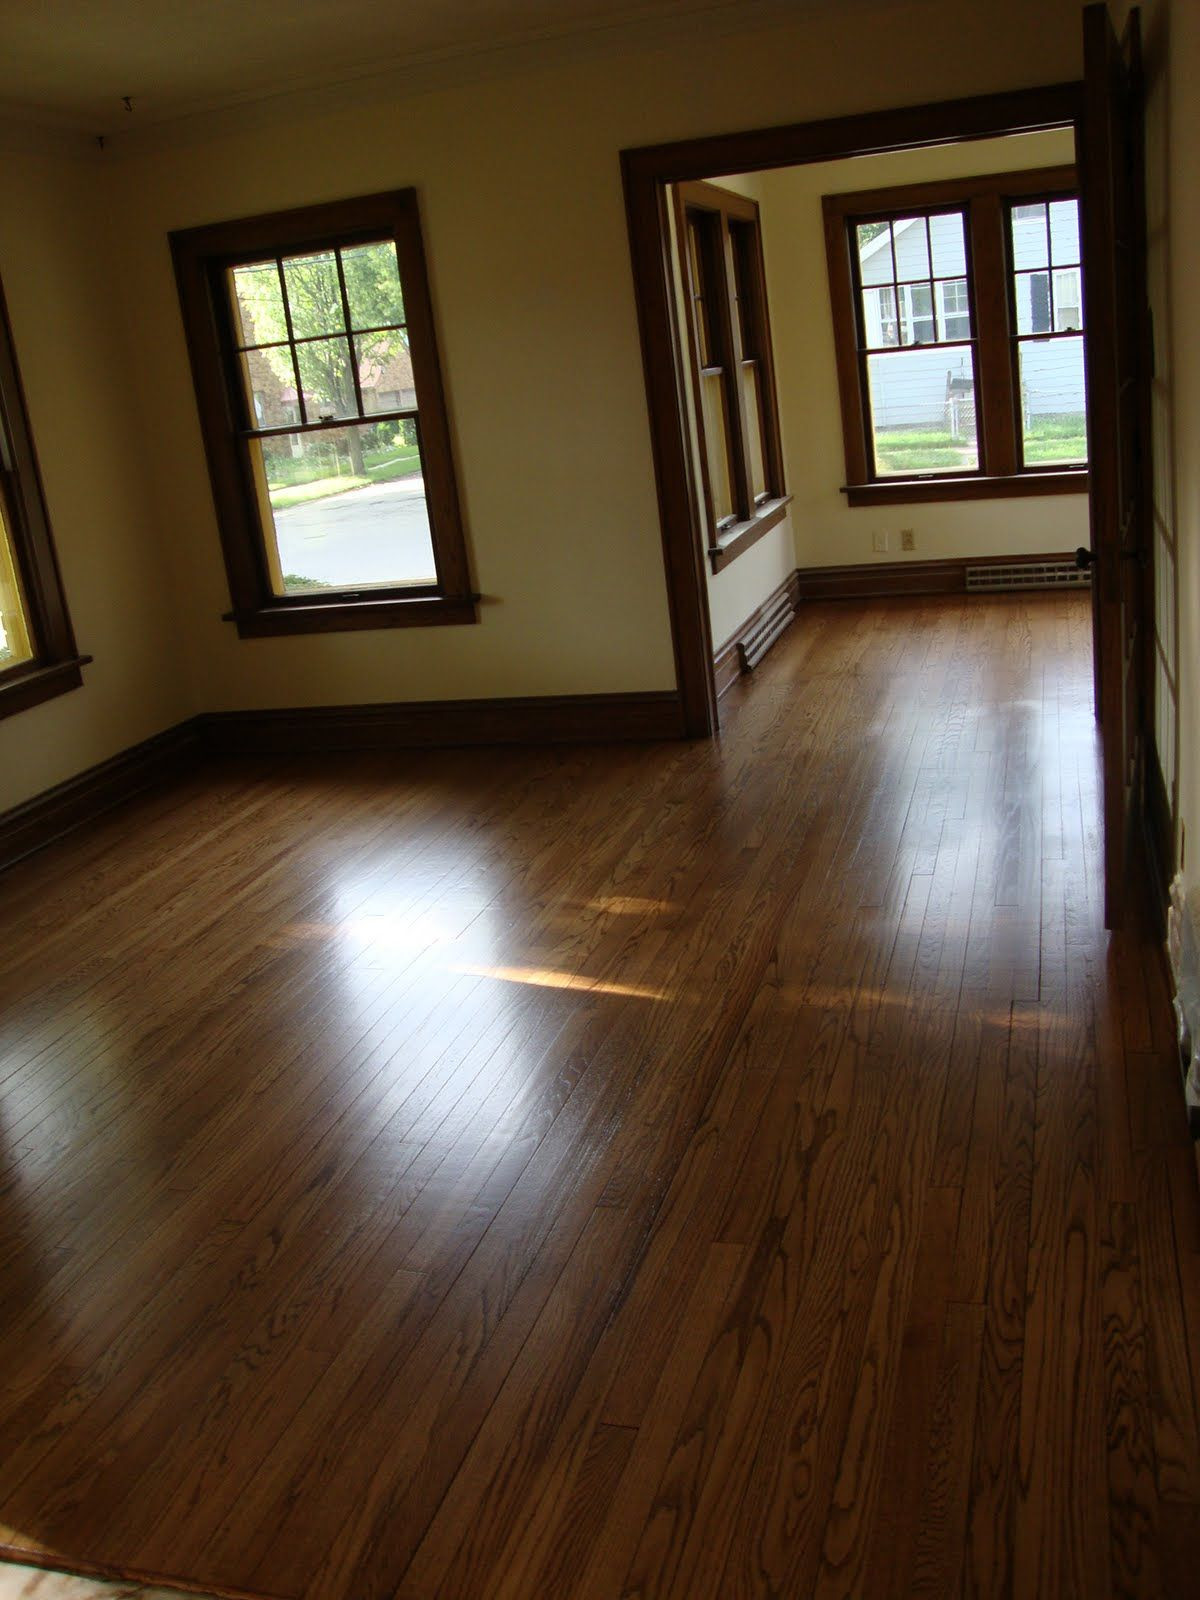 Dark Hardwood Floors with Dark Furniture Of Grey Walls Dark Wood Floors Dark Wood Trim with Hardwood Floors and Pertaining to Grey Walls Dark Wood Floors Dark Wood Trim with Hardwood Floors and Lighter Not Sterile White